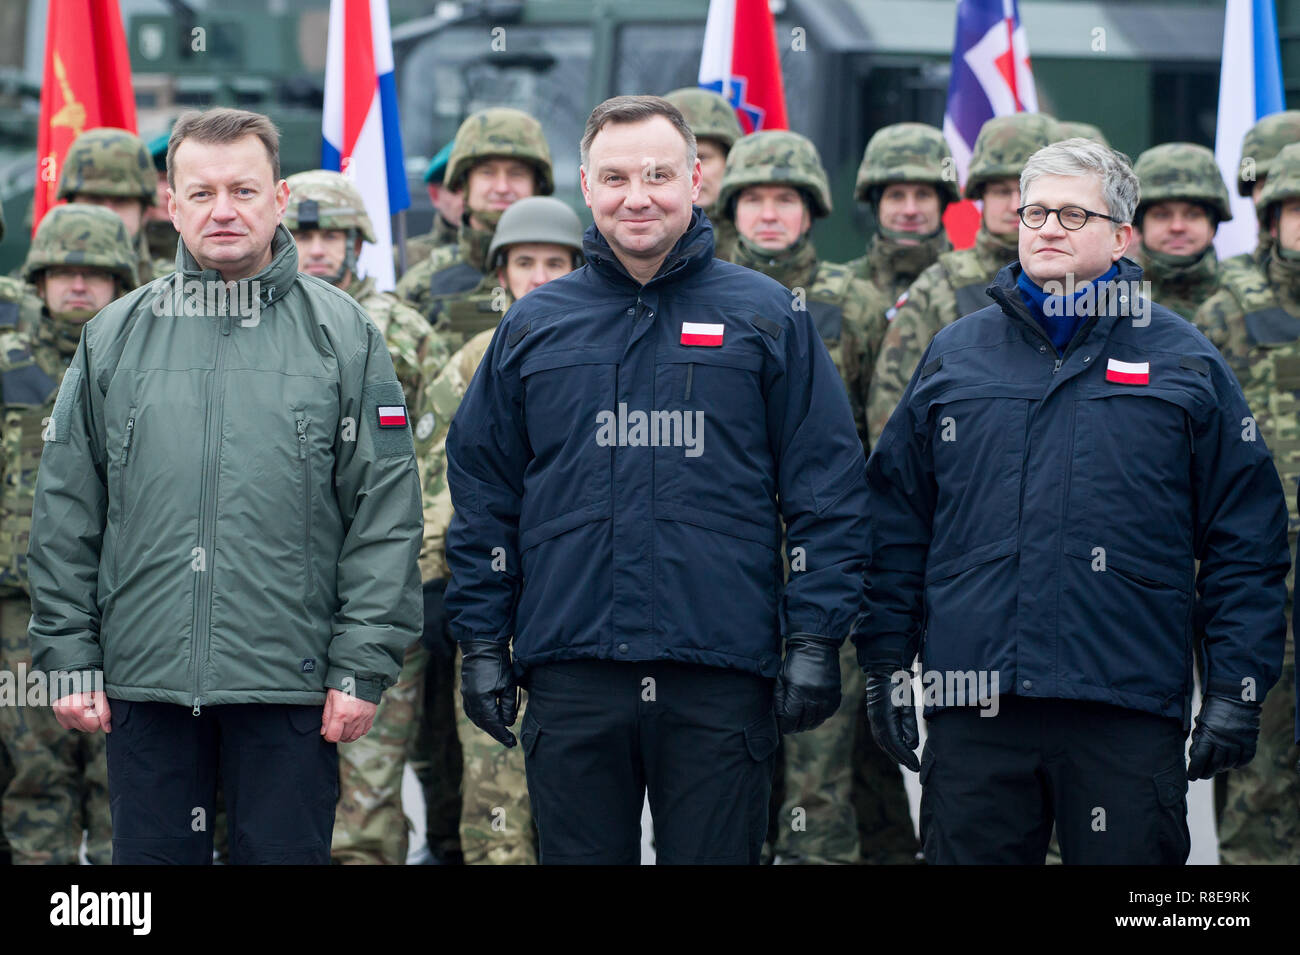 Mariusz Blaszczak, Minister of Defence, and Andrzej Duda, President of Poland, during his visit in Multinational Division North East MND-NE Headquarte - Stock Image